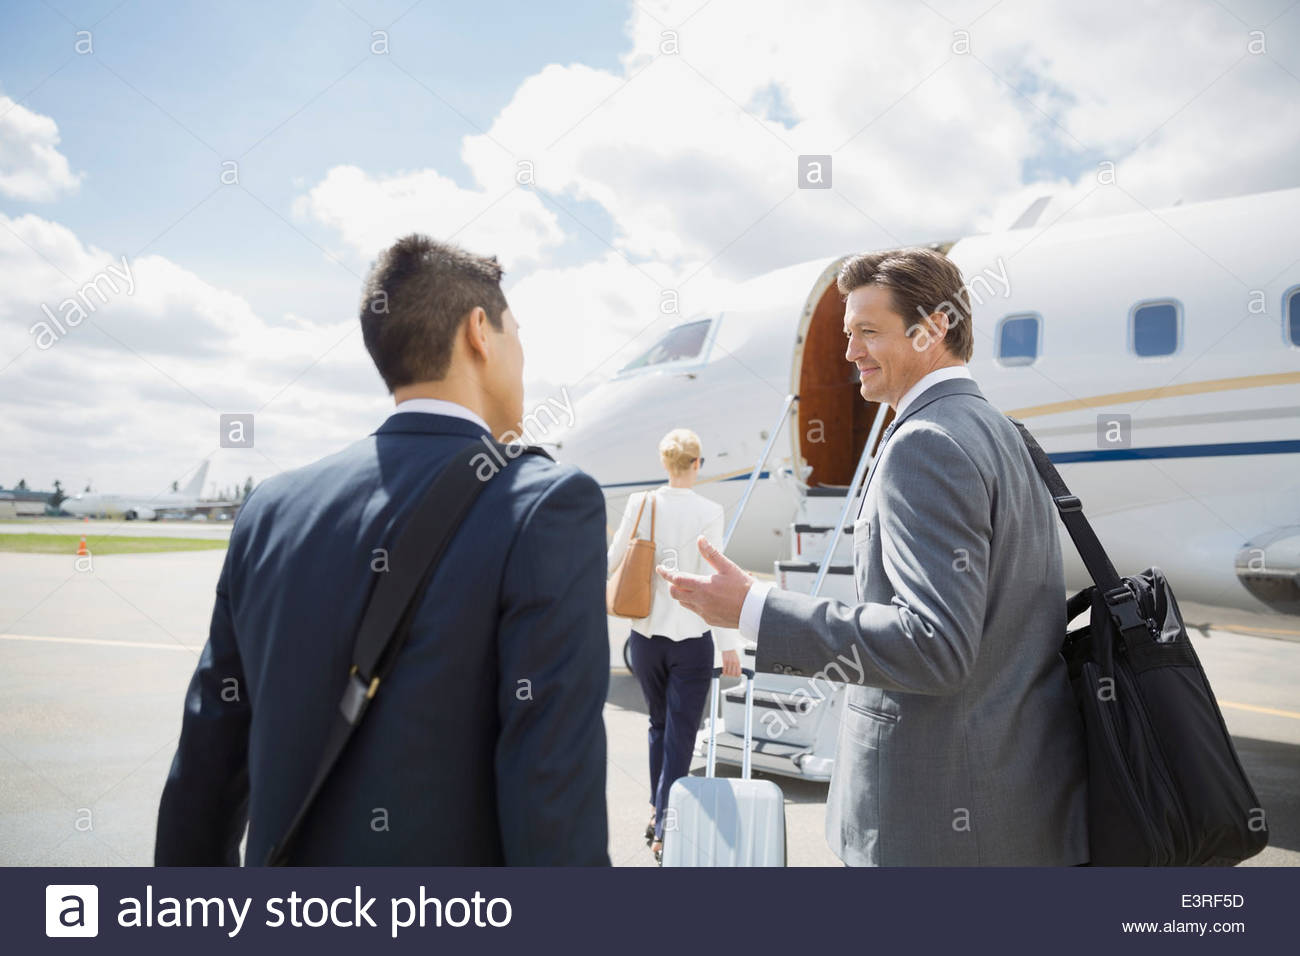 Parler d'affaires sur le bitume avec corporate jet Photo Stock